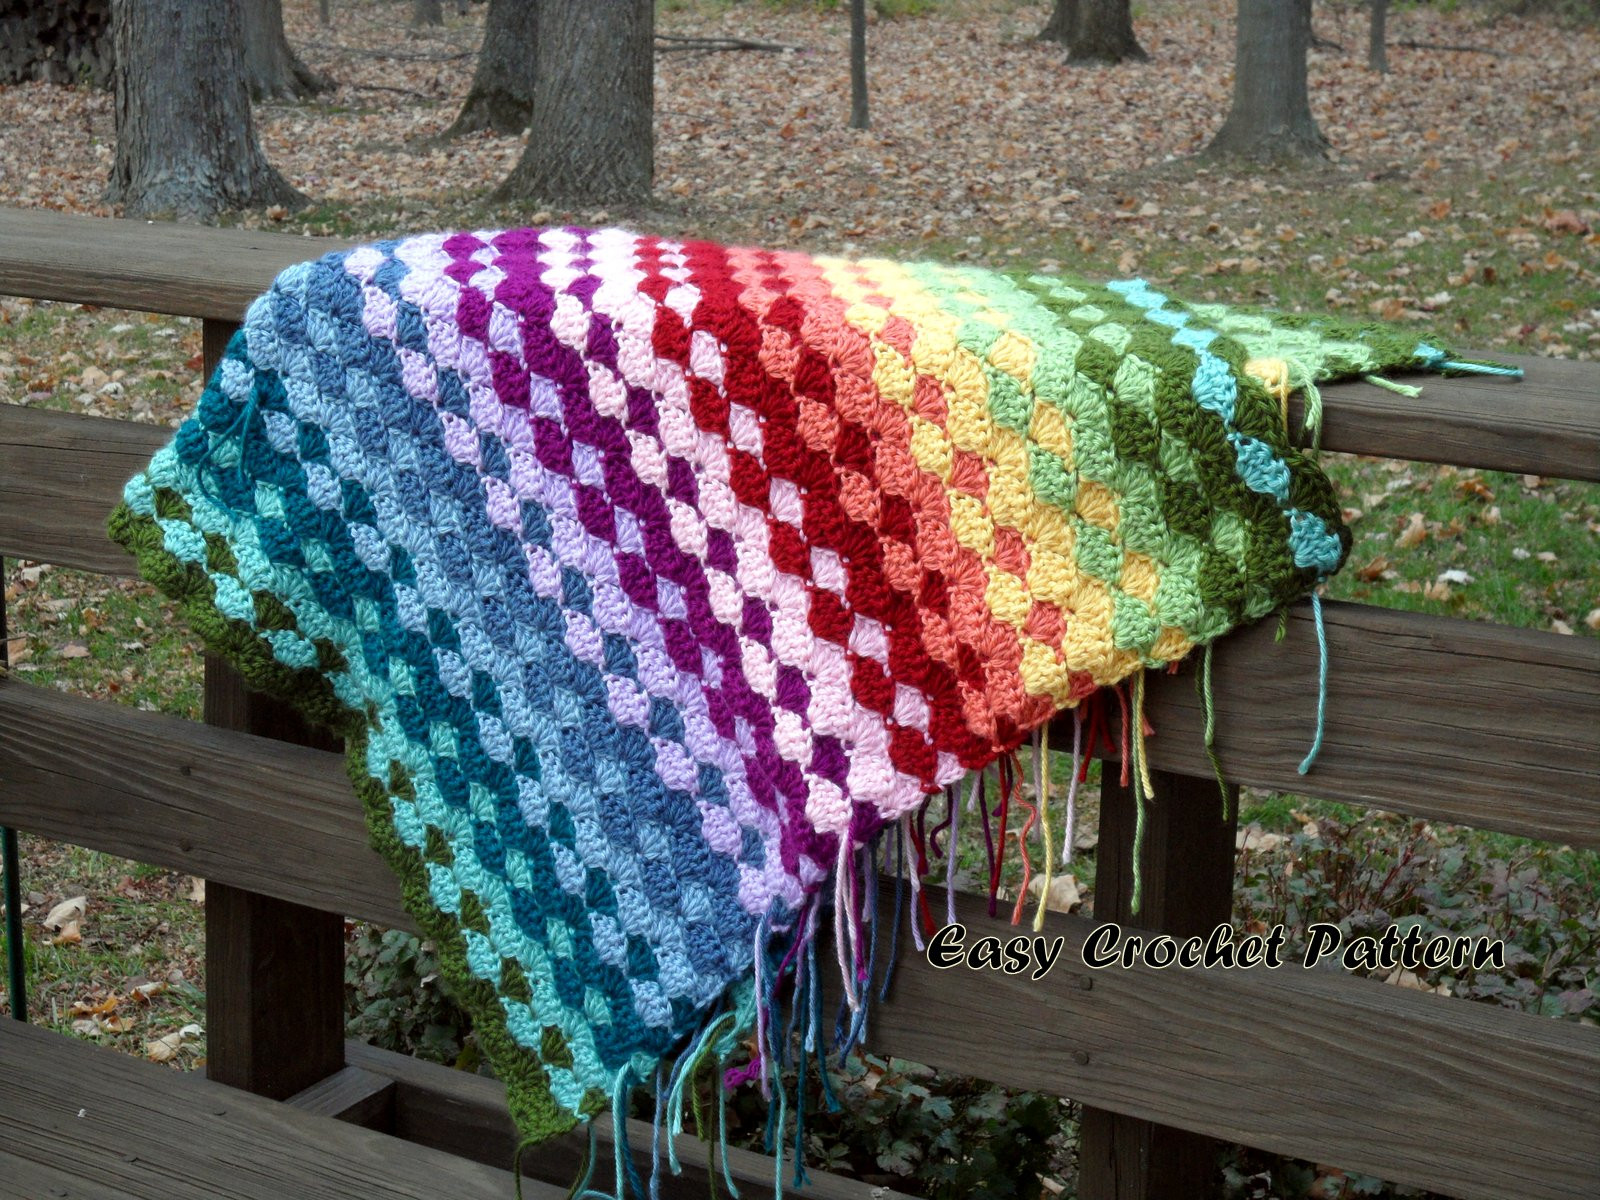 Easy Crochet Pattern Crochet Shell Afghan Tutorial